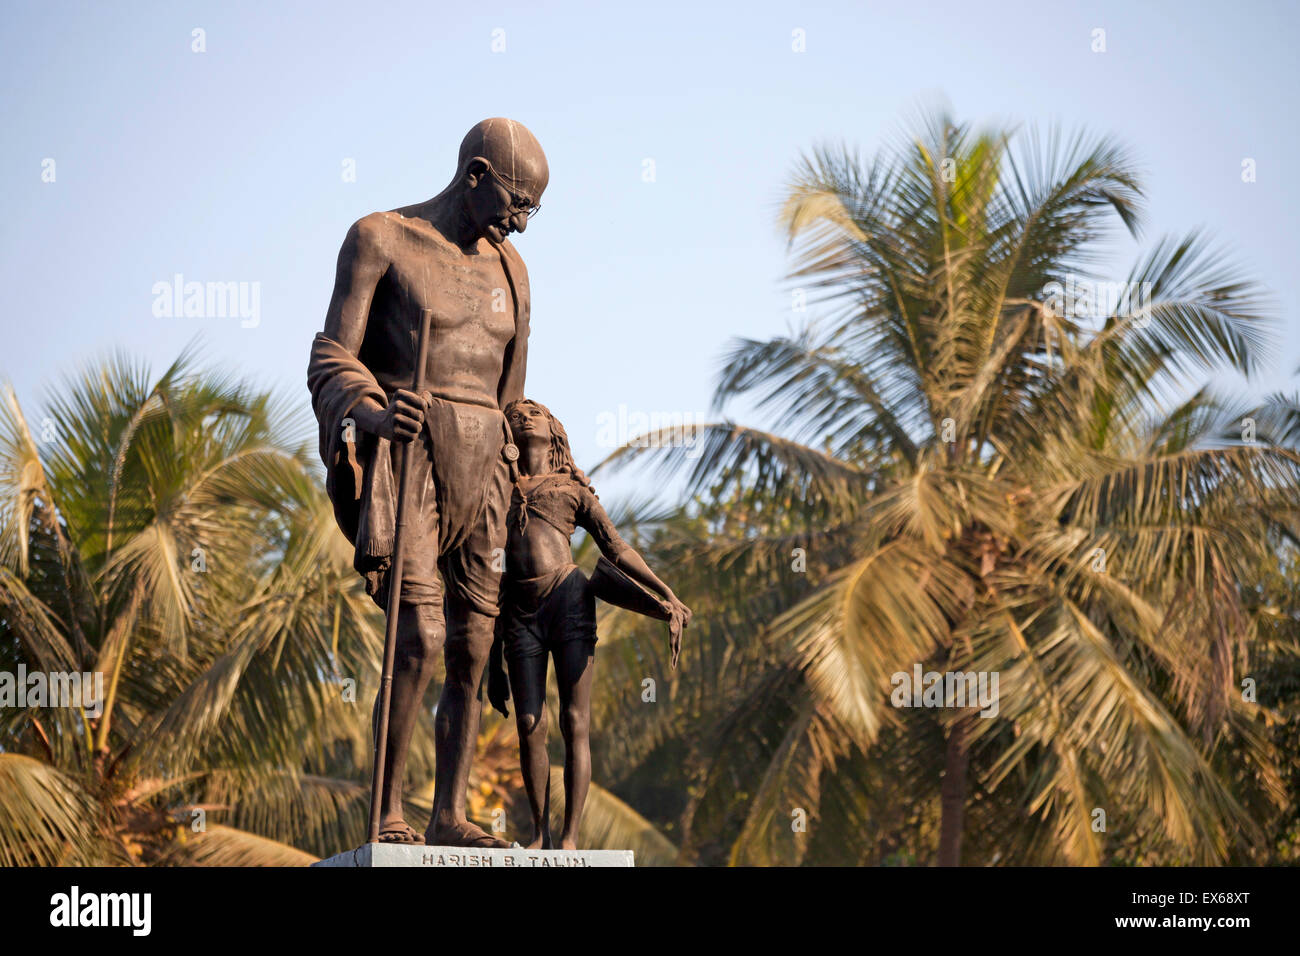 Mahatma Gandhi statue, Velha Goa or Old Goa, near Panaji or Panjim, Goa, India Stock Photo